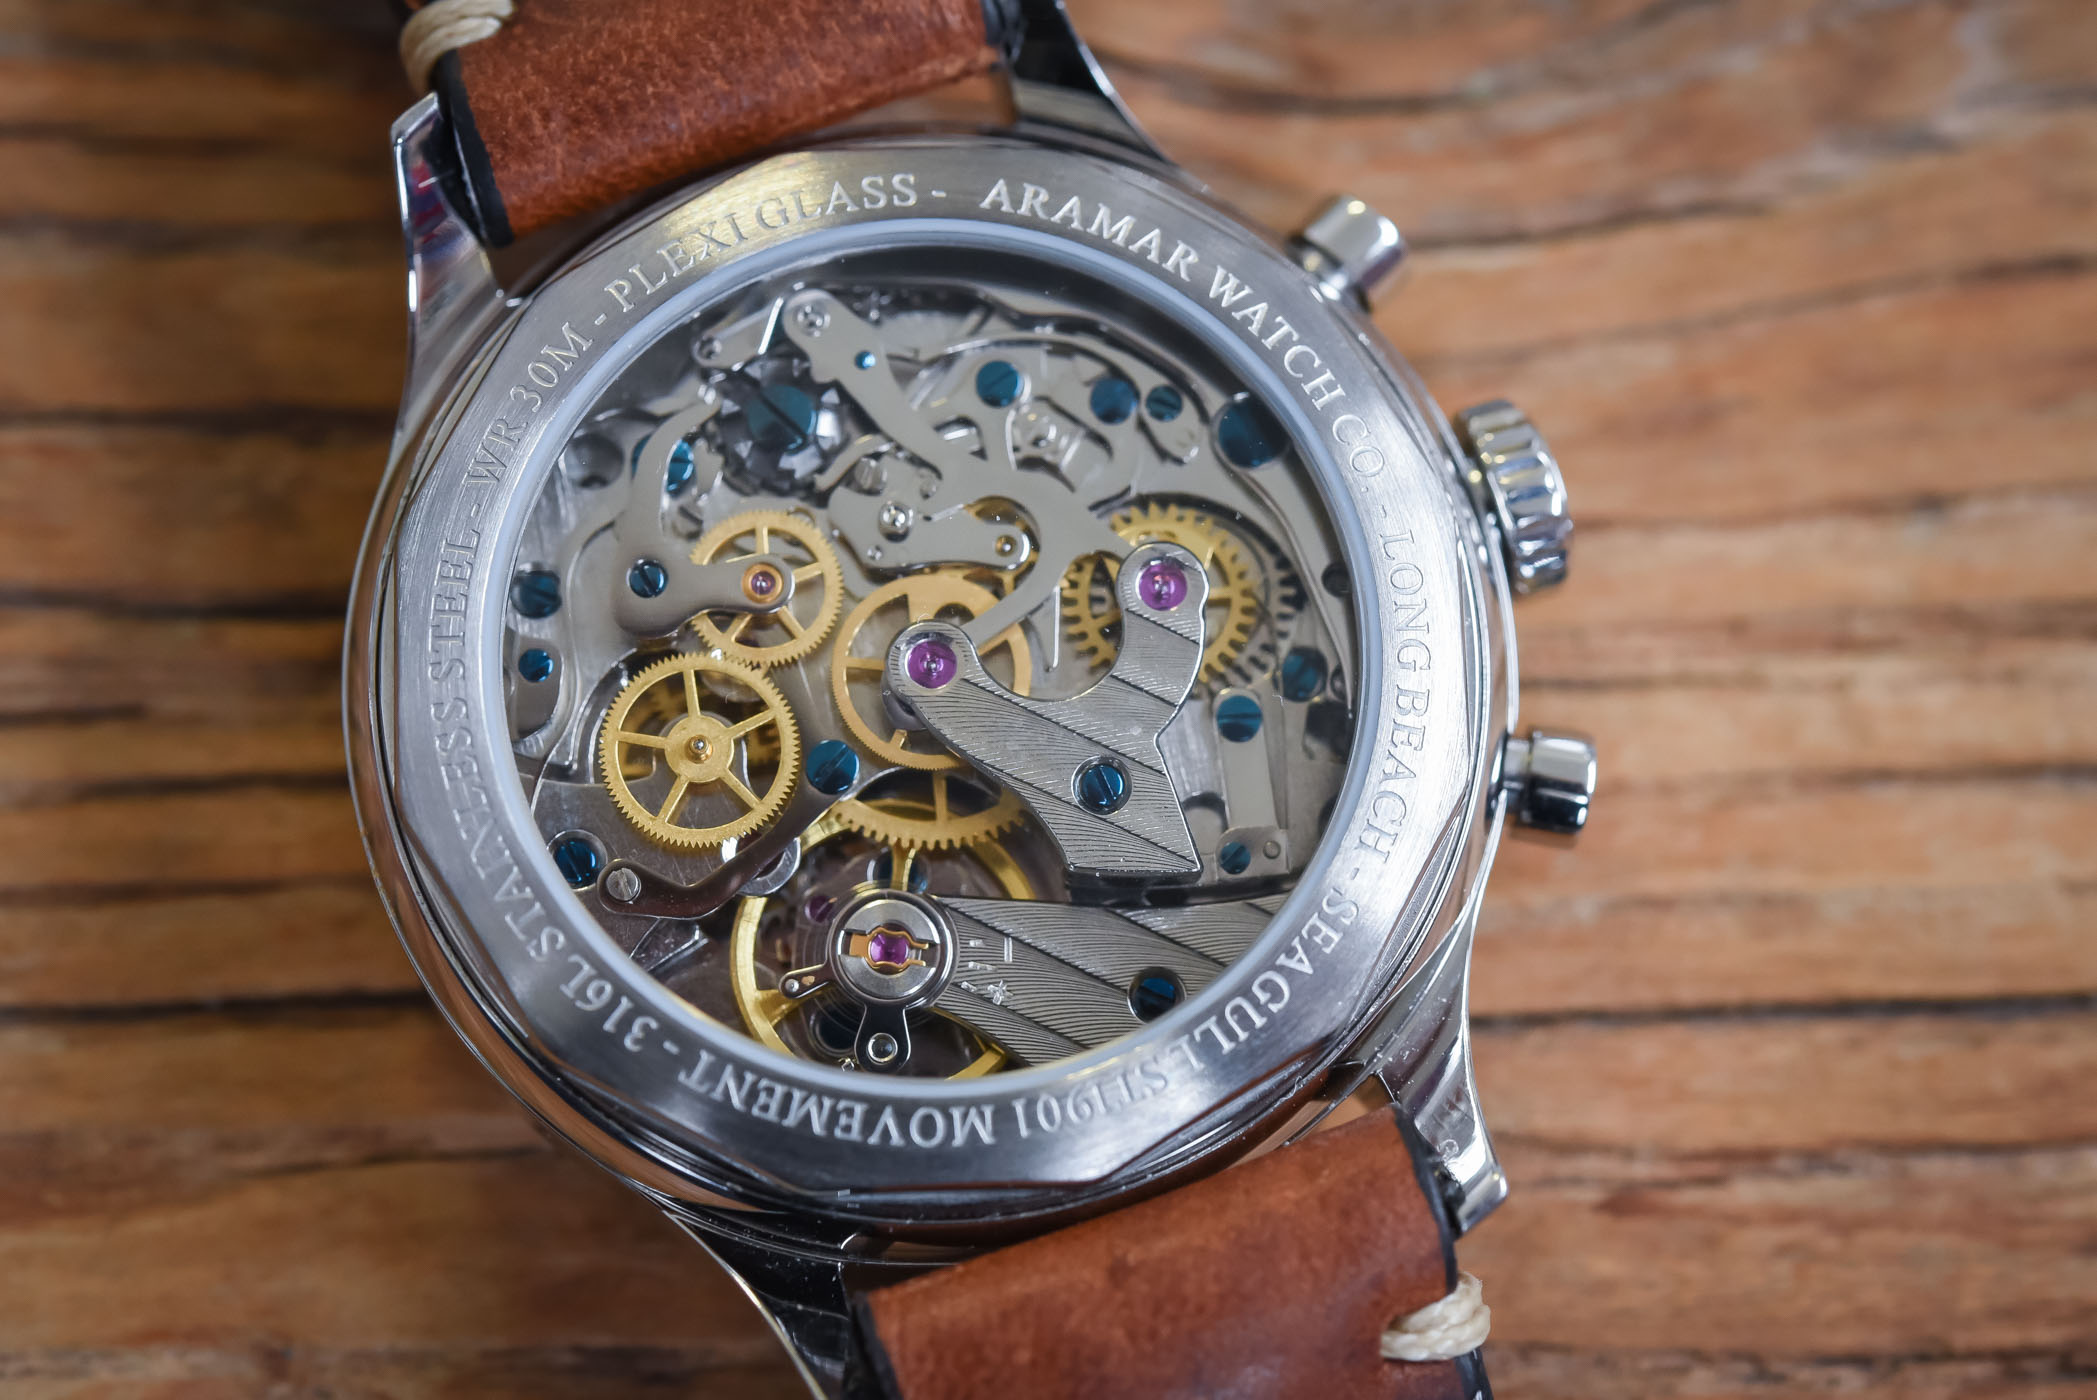 Aramar Long Beach Racing Chronograph - Value Proposition